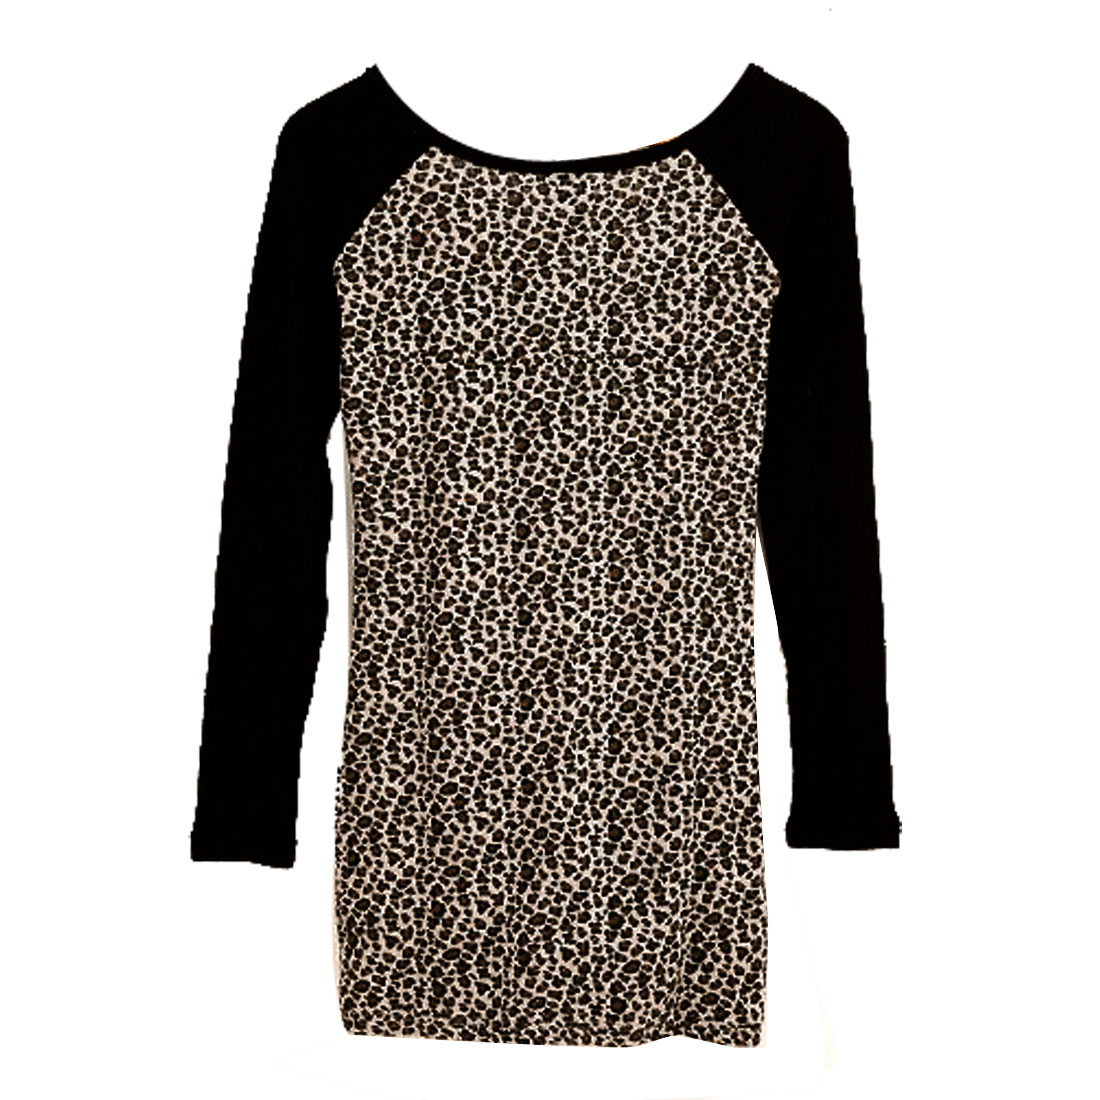 Women Black Brown Leopard Pattern Round Neck Long Sleeves Shirt XS